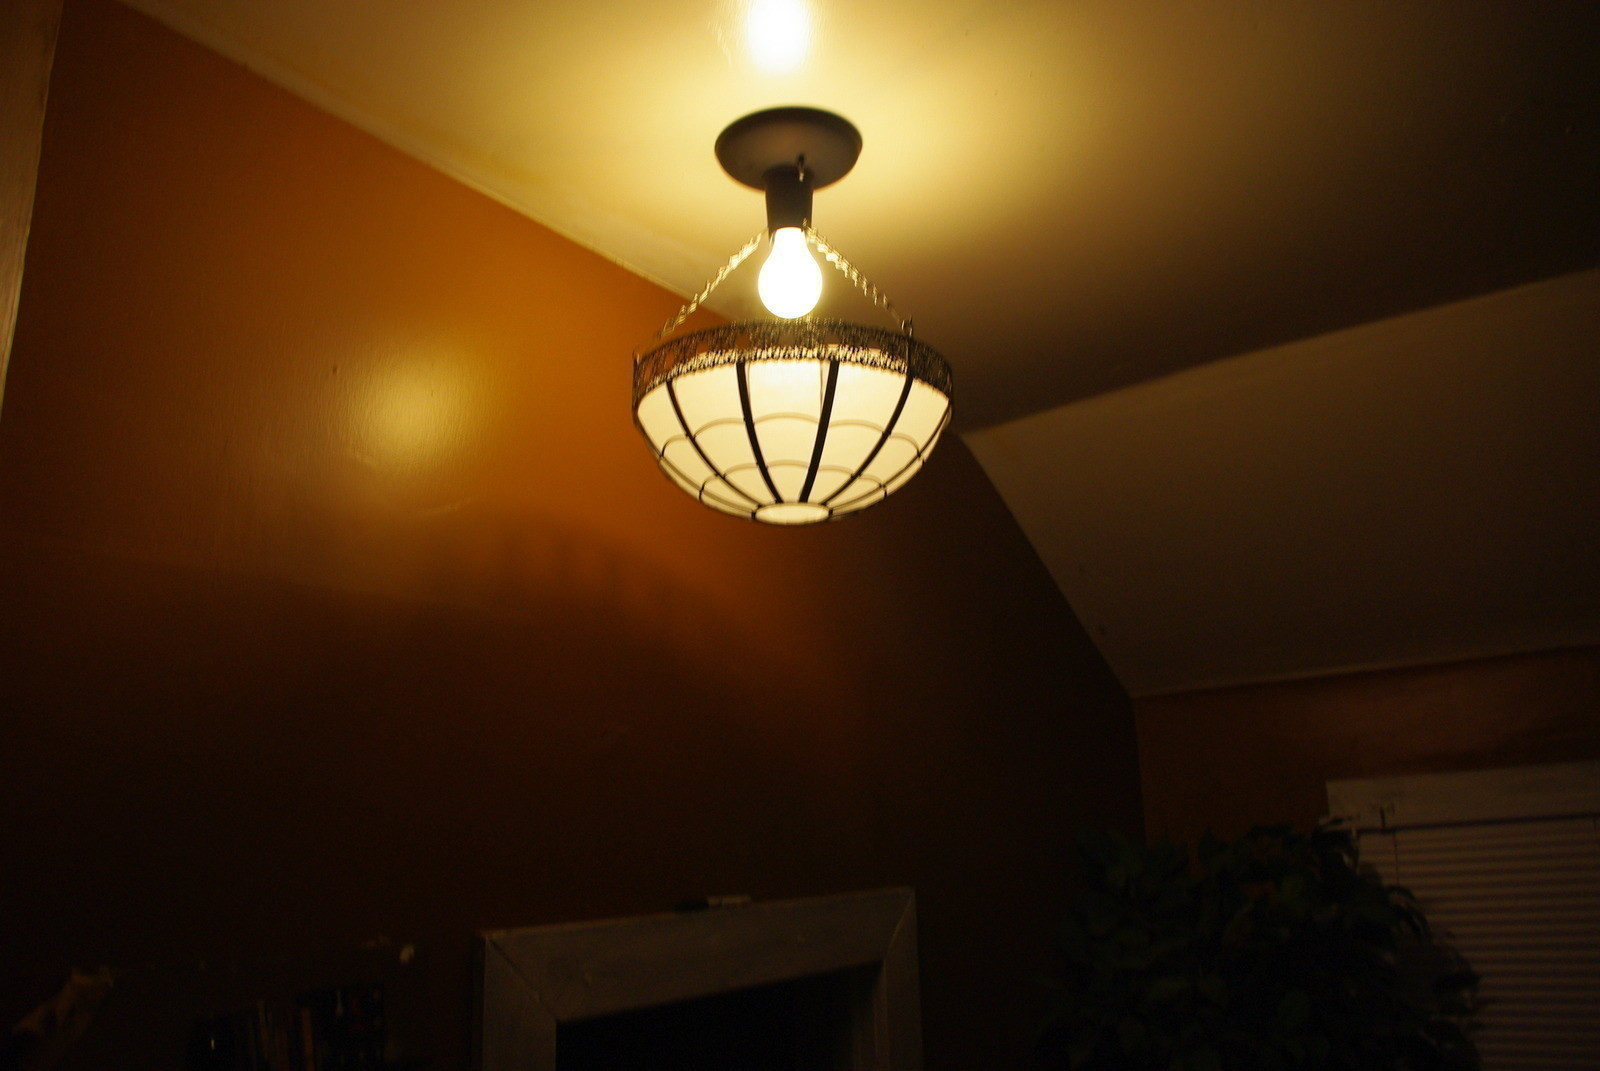 Ceiling Light Fixture Cheap 183 How To Make A Lamp